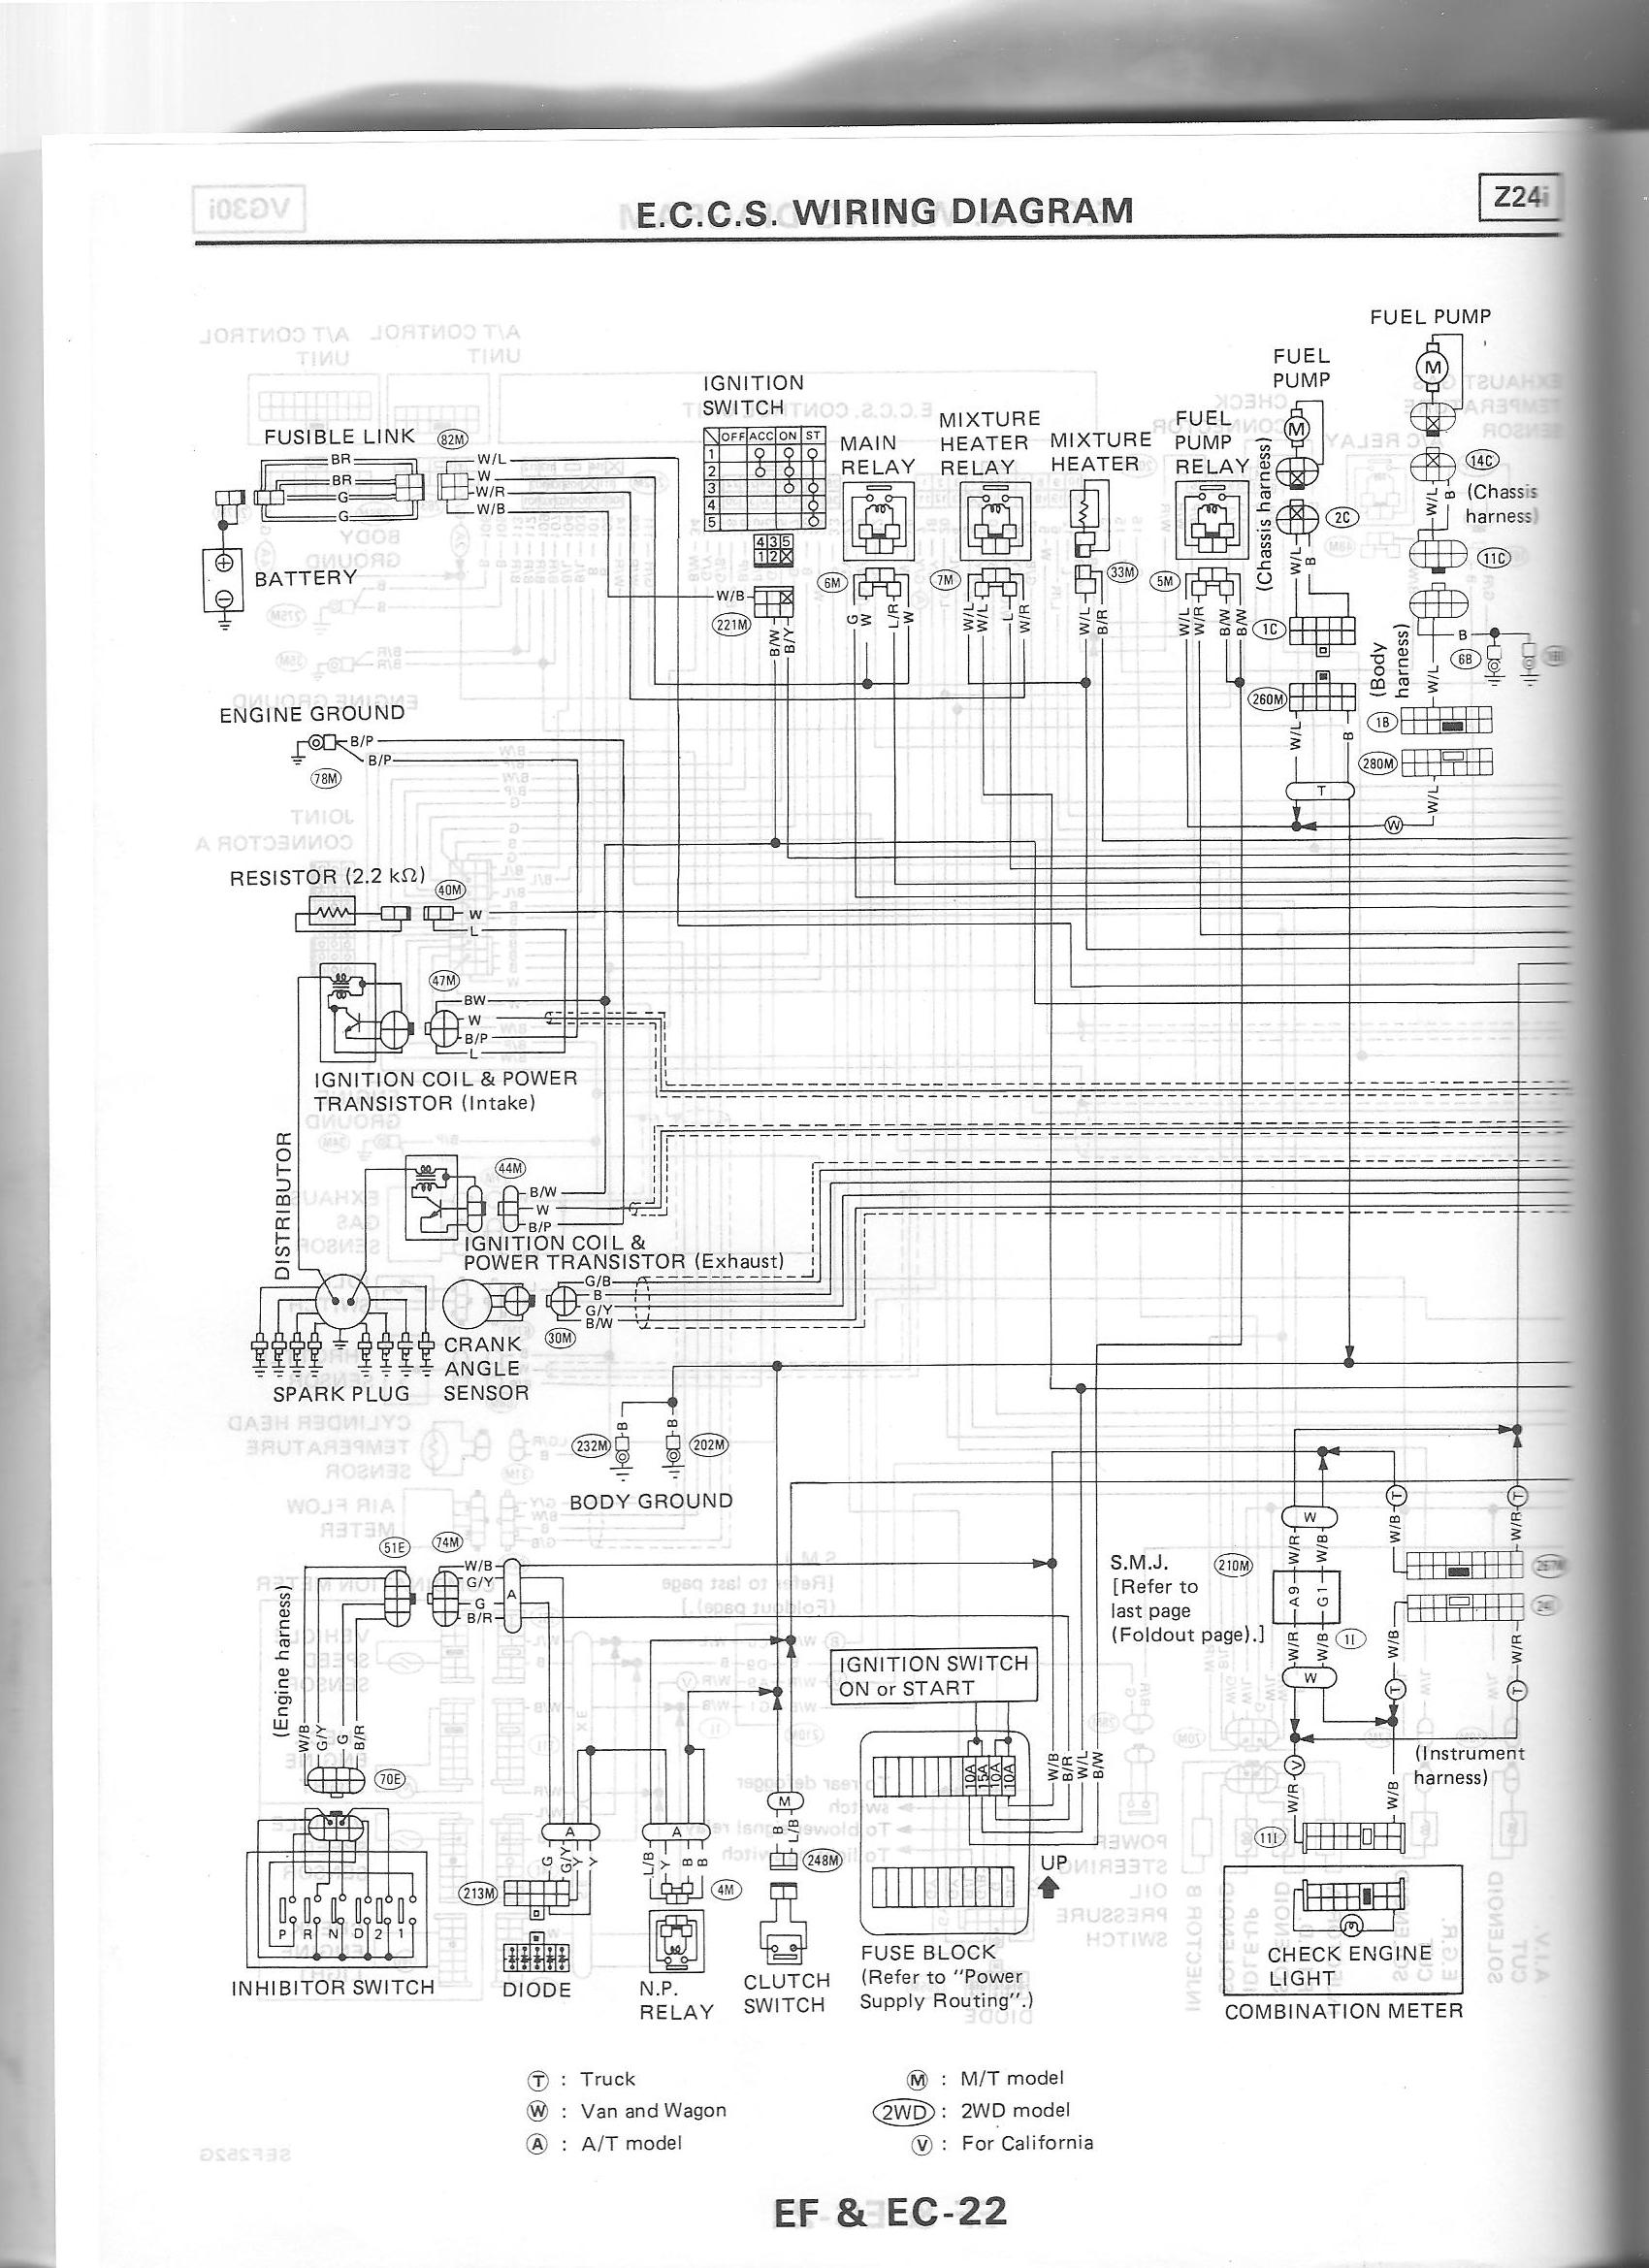 87 Nissan Pickup Parts Diagram Trusted Wiring Nissanpickupenginediagram 1996 Xe 2 4 L4 Gas Nut 1988 Z24i Schematic